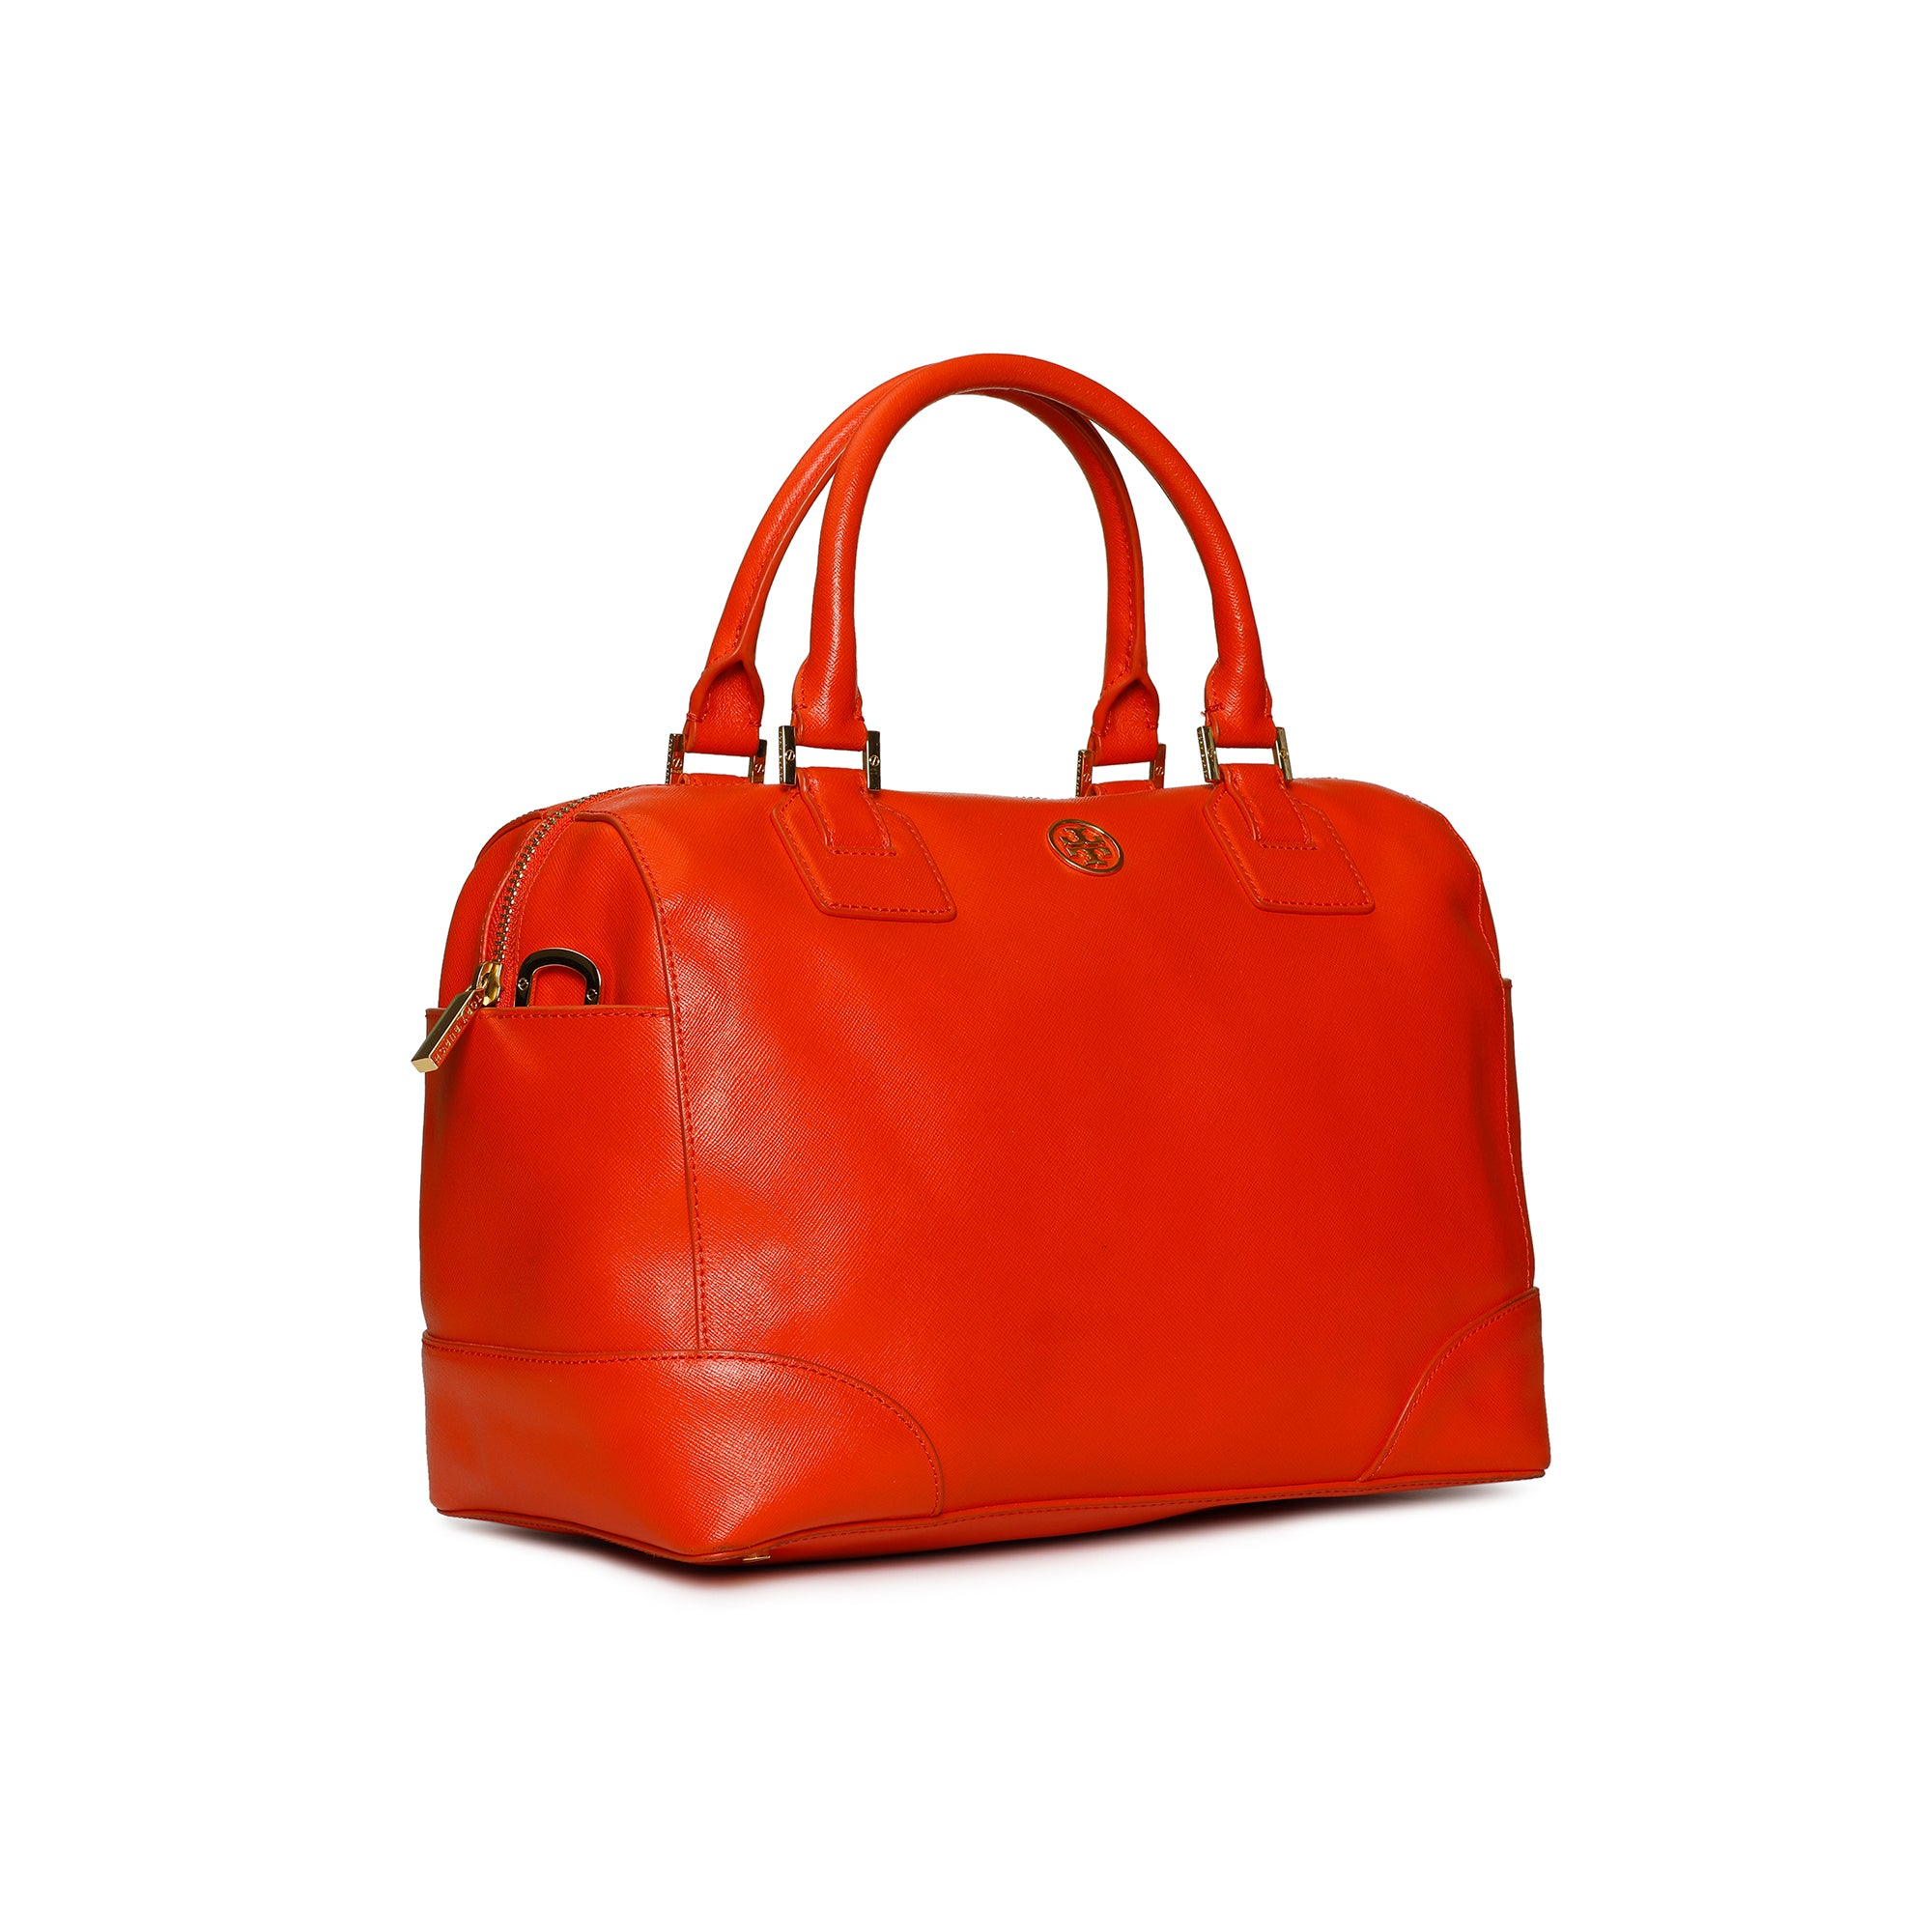 Tory Burch Robinson Speedy Satchel Orange Leather Shoulder Bag